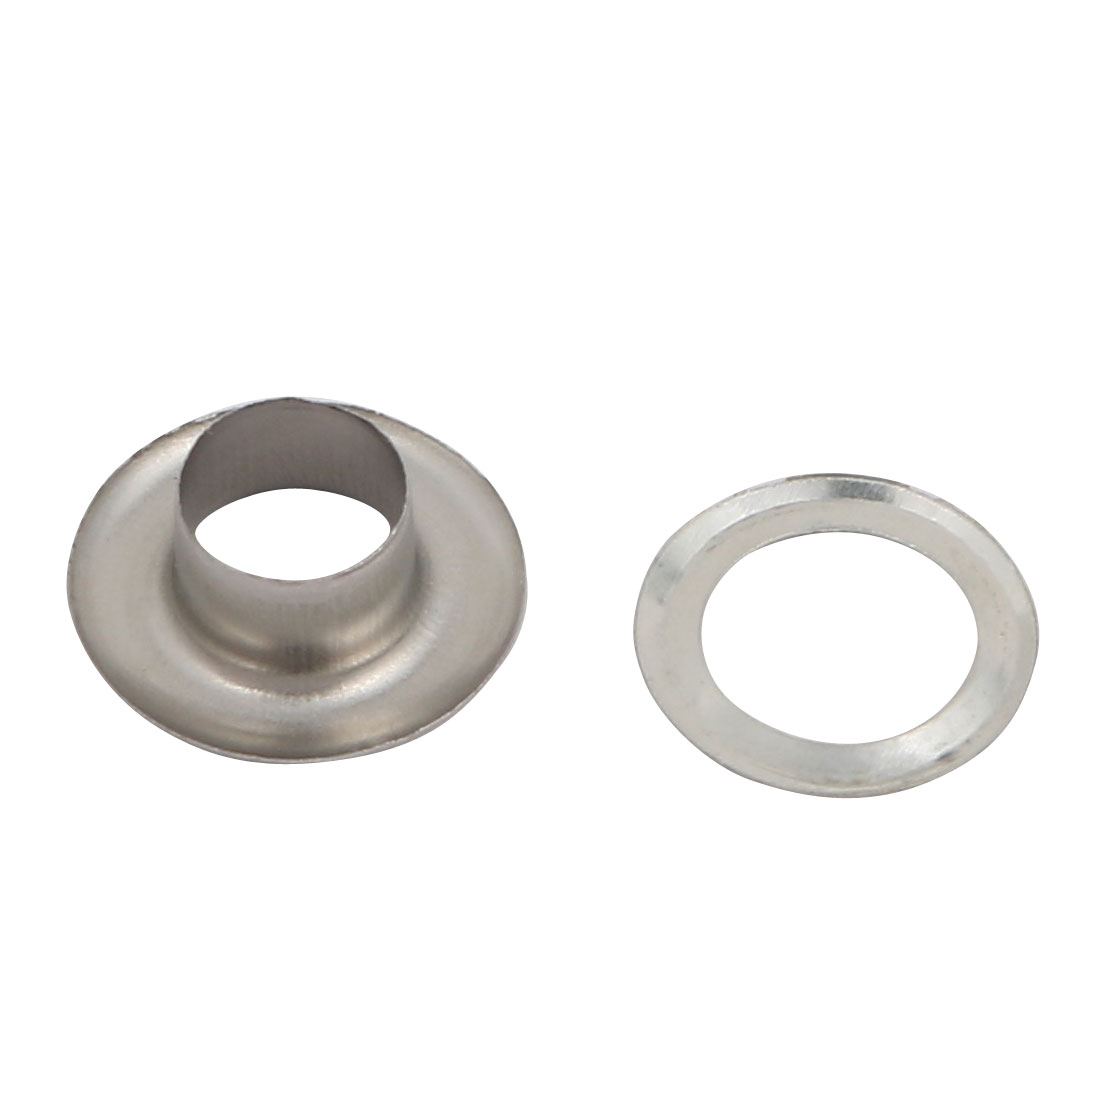 Unique Bargains 1000pcs 6mm 201 Stainless Steel Eyelet Grommets w Washers for Clothes Leather - image 2 of 3